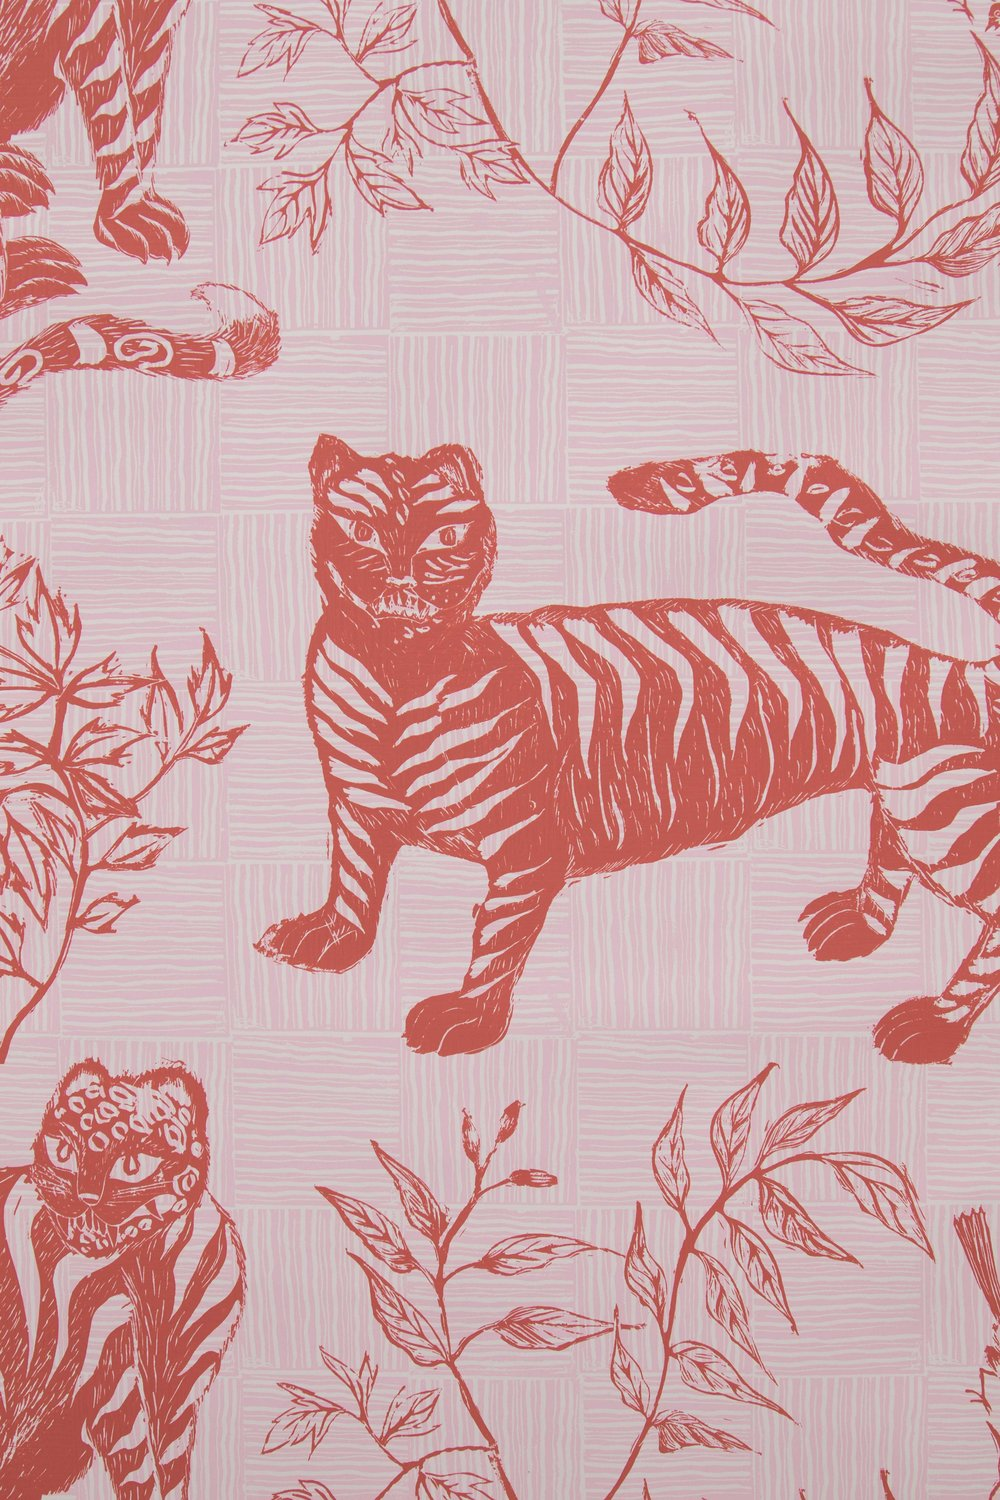 Krane Home_Tiger and Magpie Carmine Wallpaper-2.jpeg